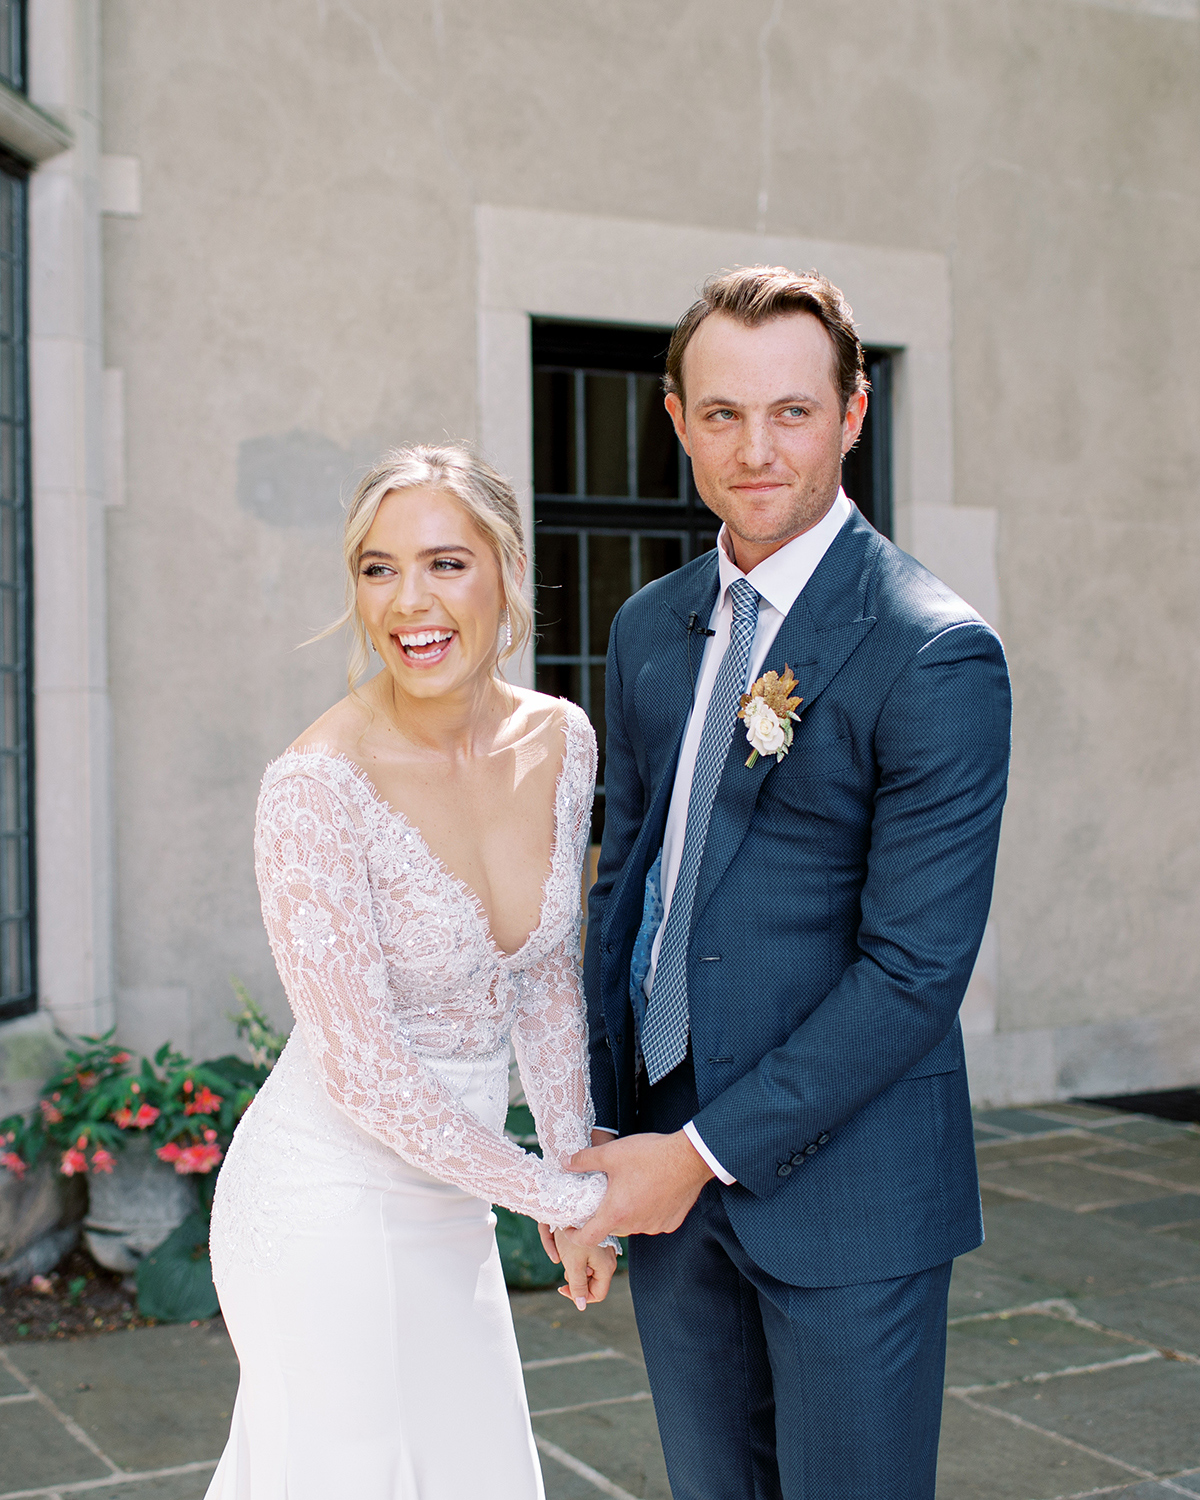 happy wedding couple wedding dress navy blue suit